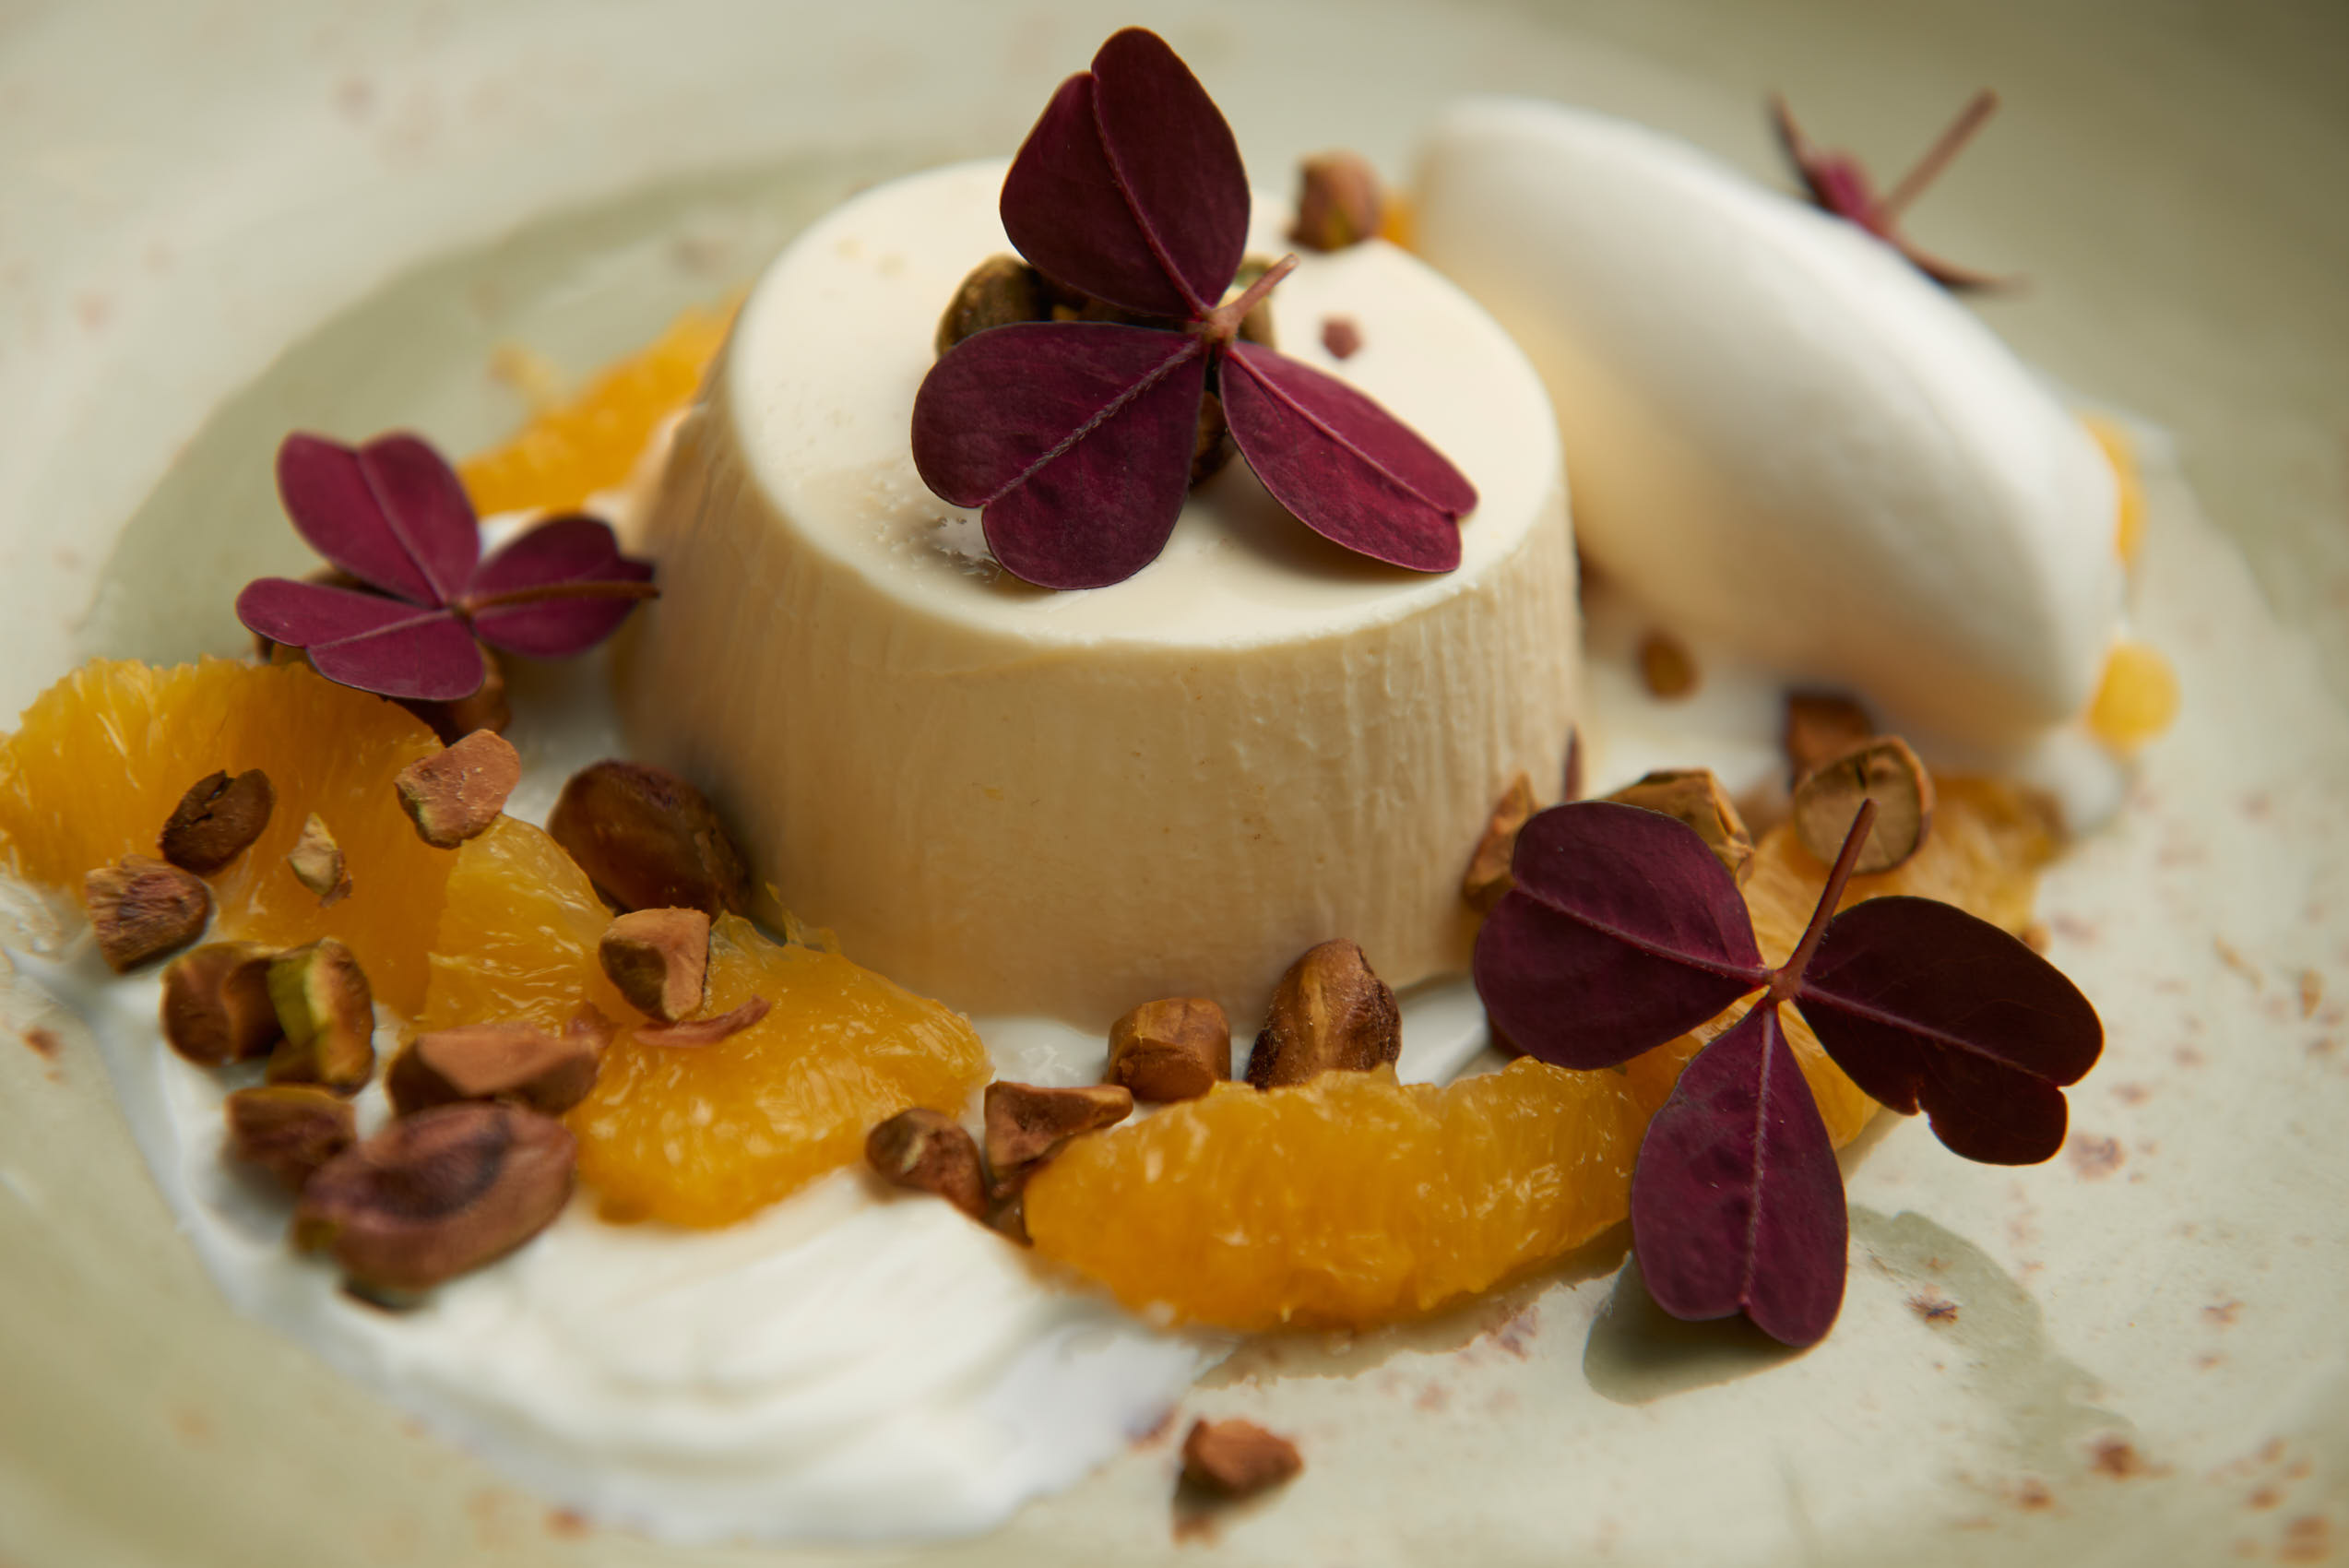 Vanilla pudding with clementine photo by Marcel Tiedje